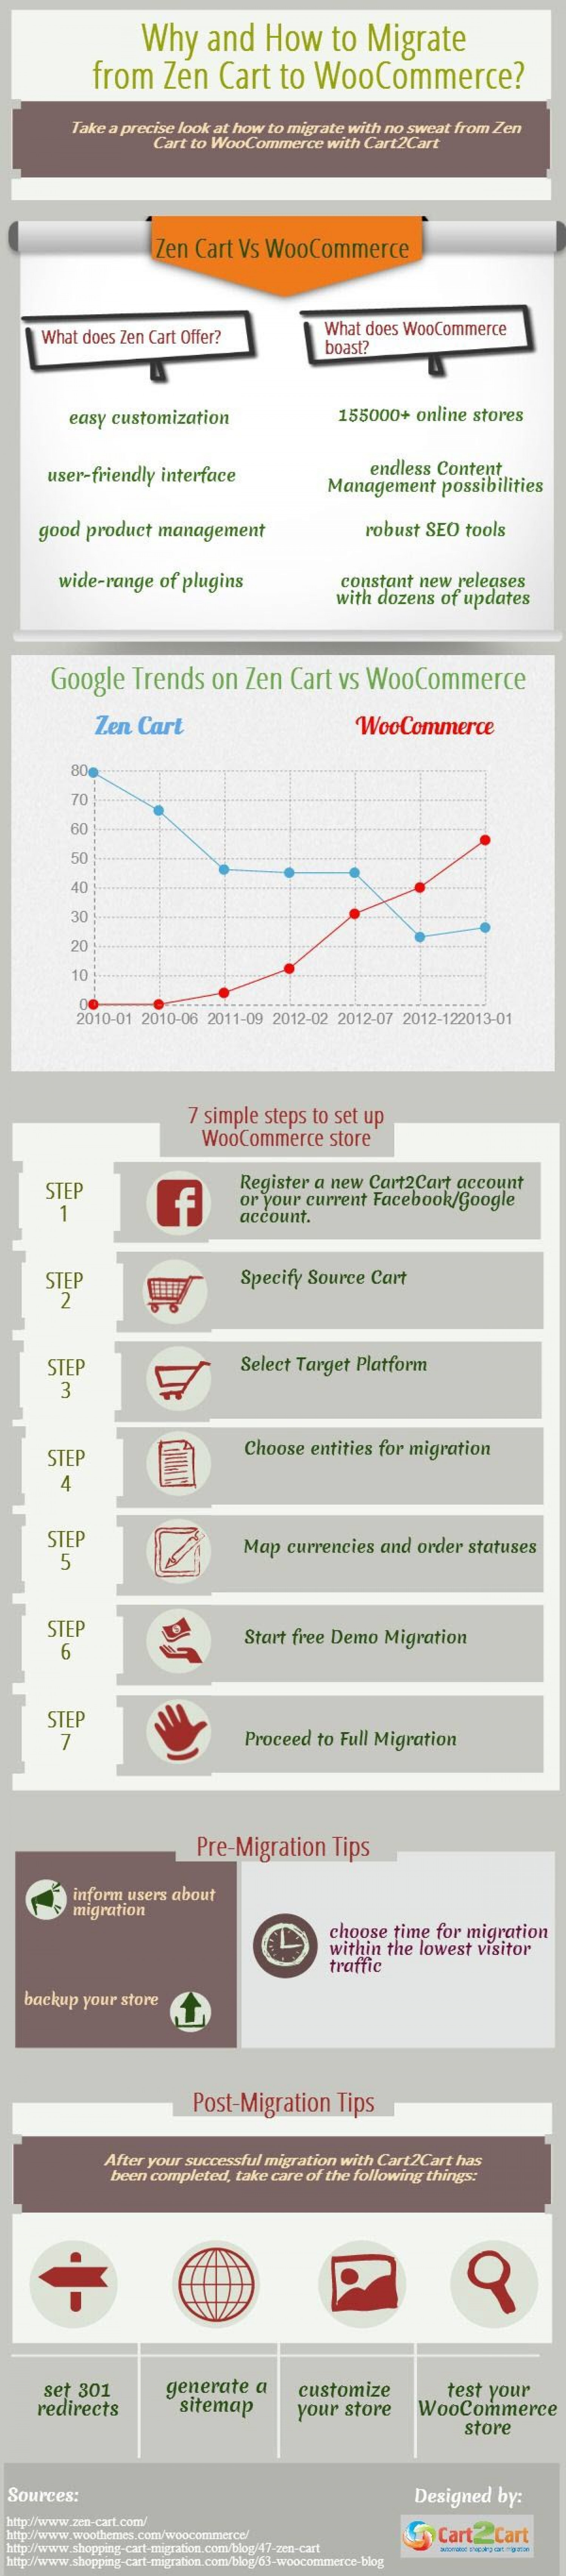 Why and How to Migrate from Zen Cart to WooCommerce? Infographic